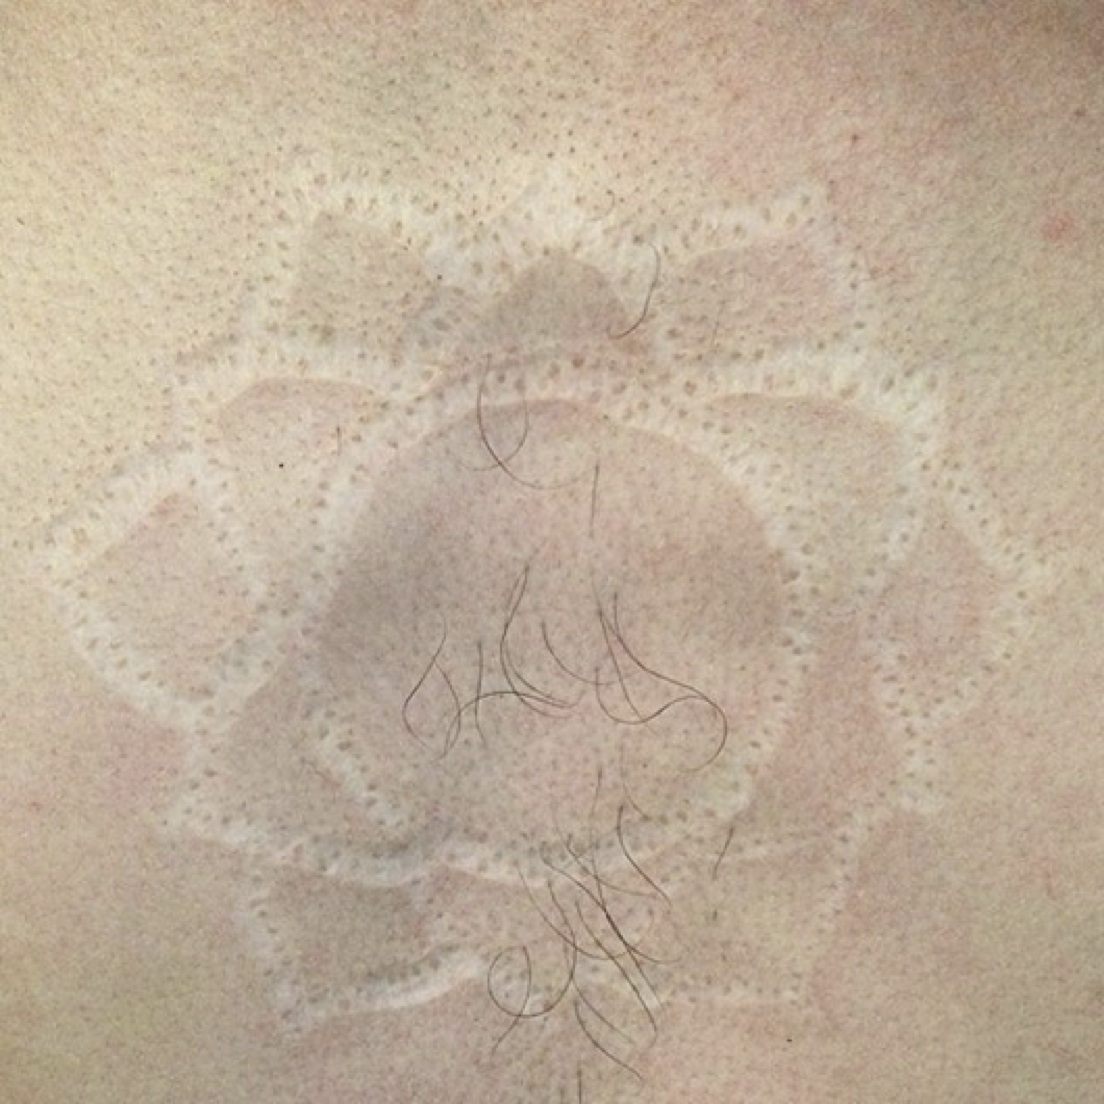 Scarification – Holier Than Thou